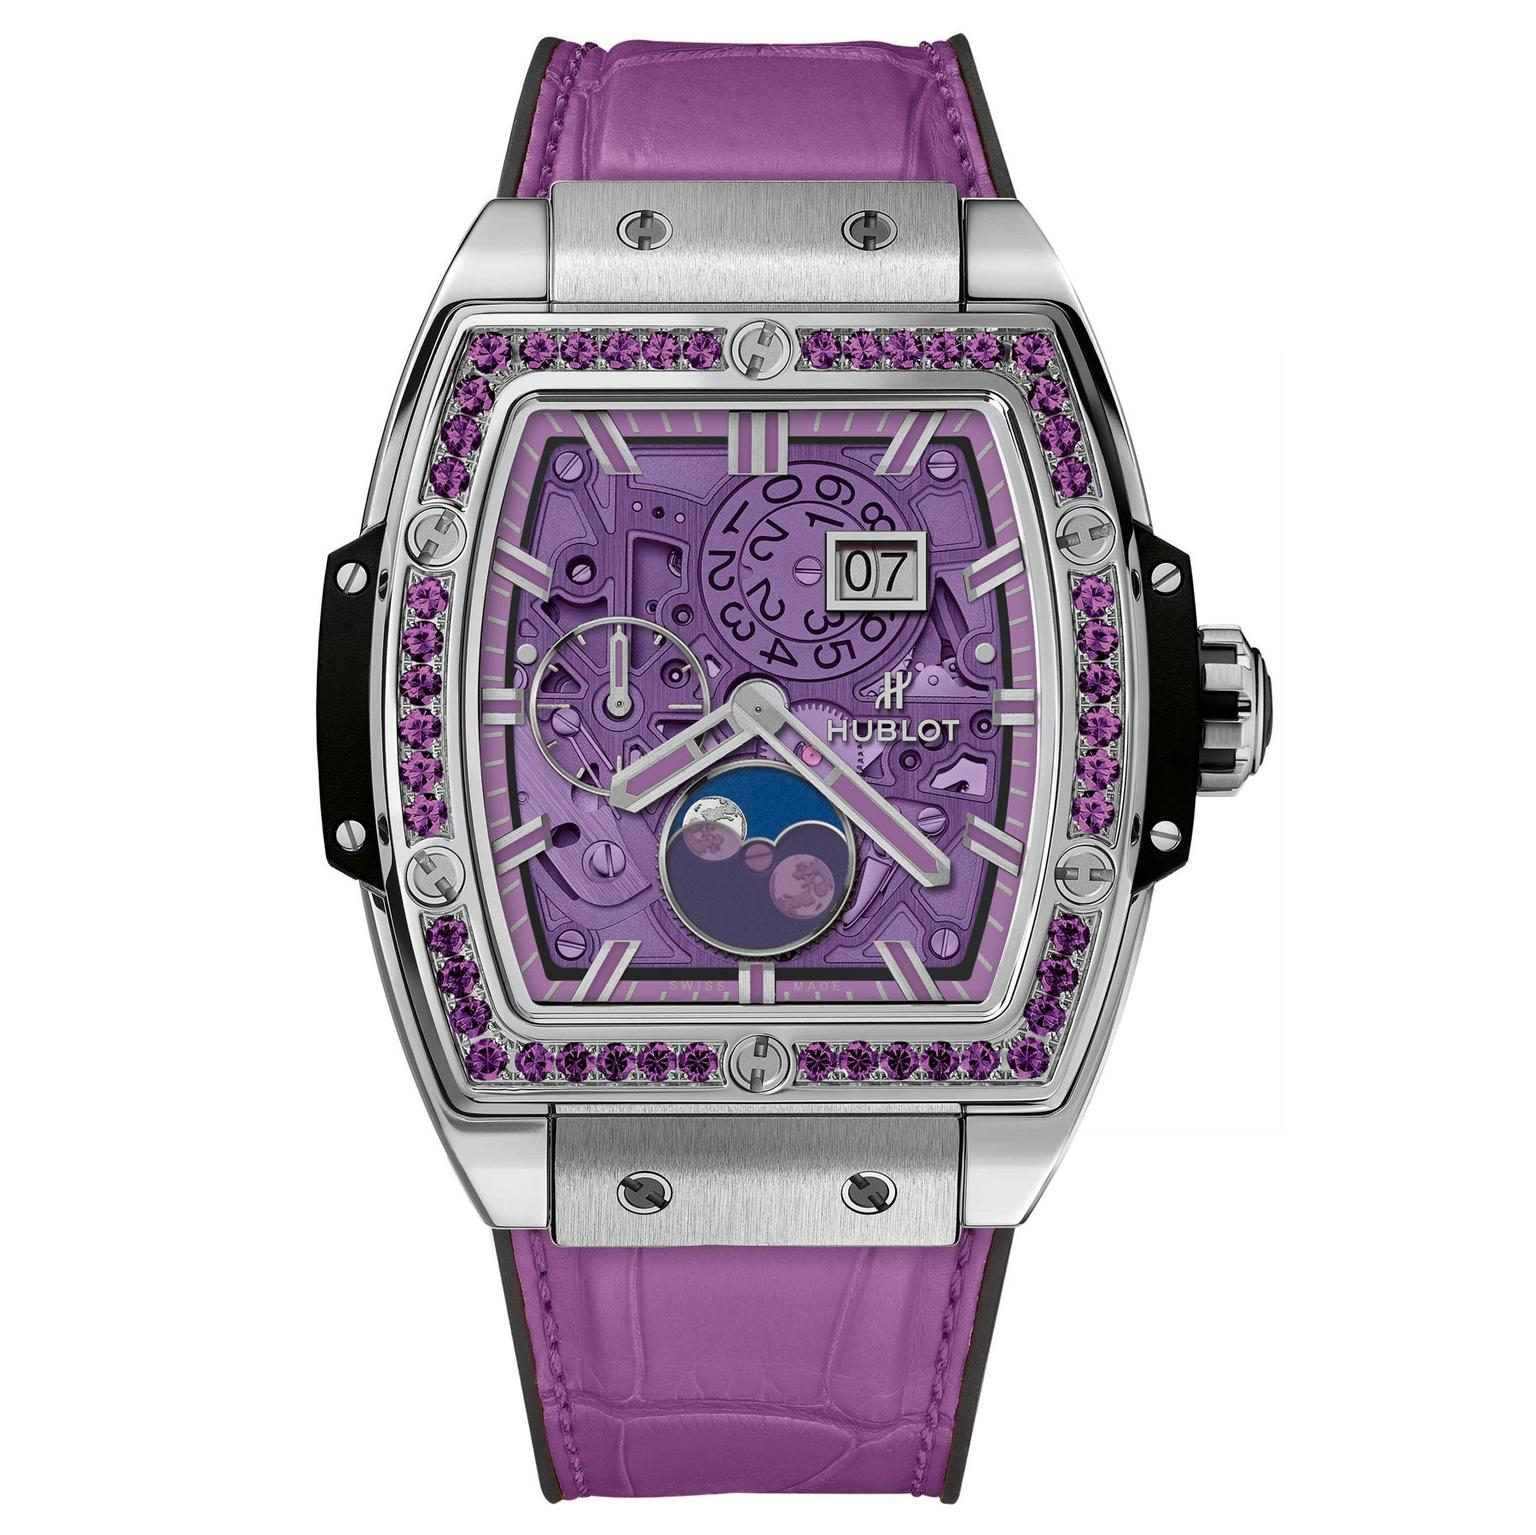 Hublot Spirit of Big Bang Moonphase Titanium Purple